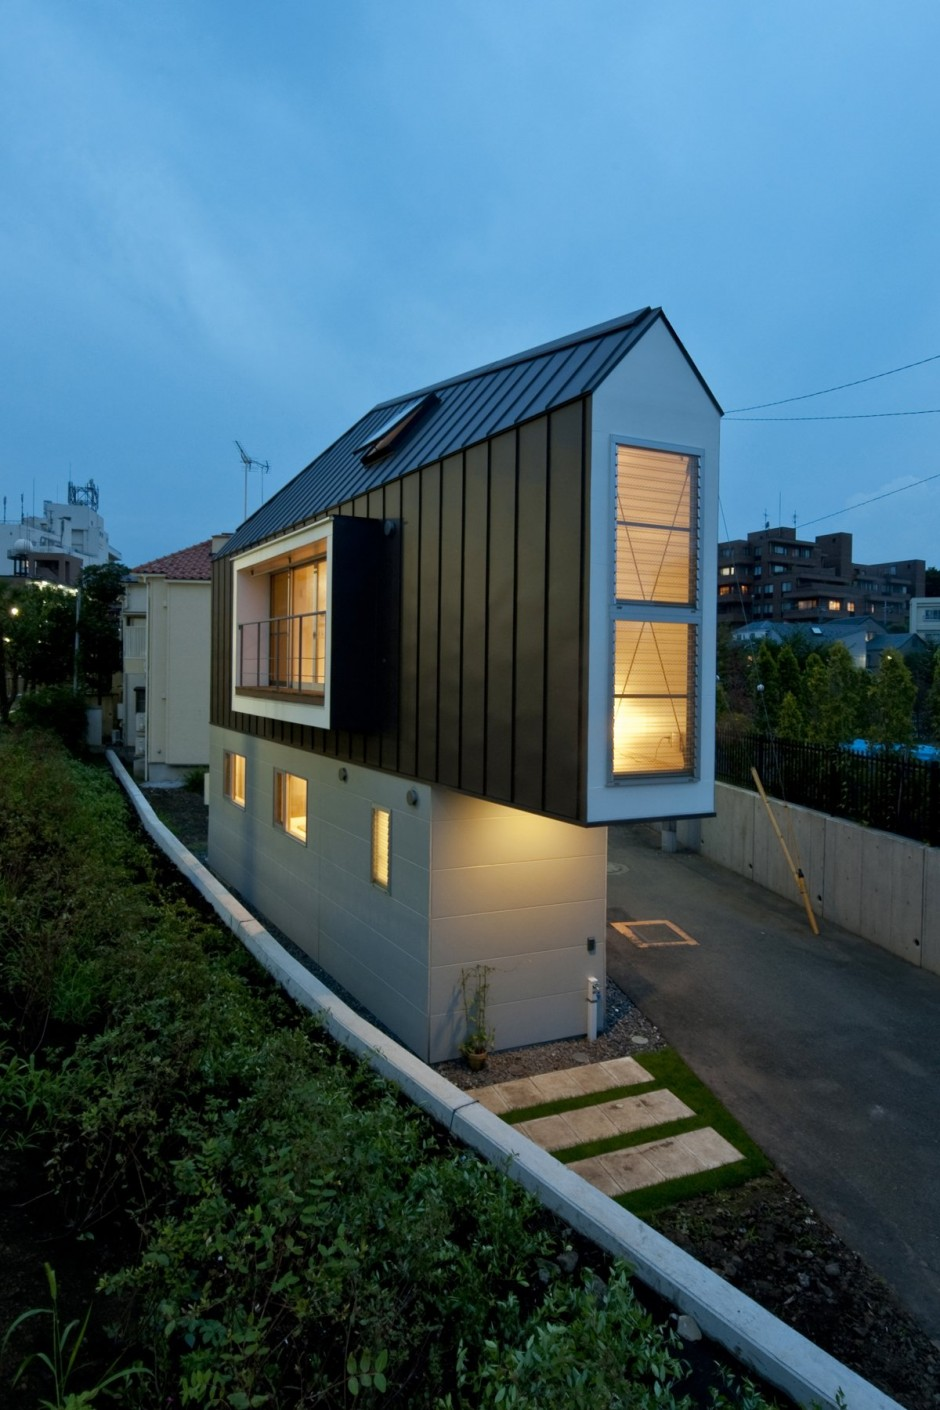 River Side House in Horinouchi